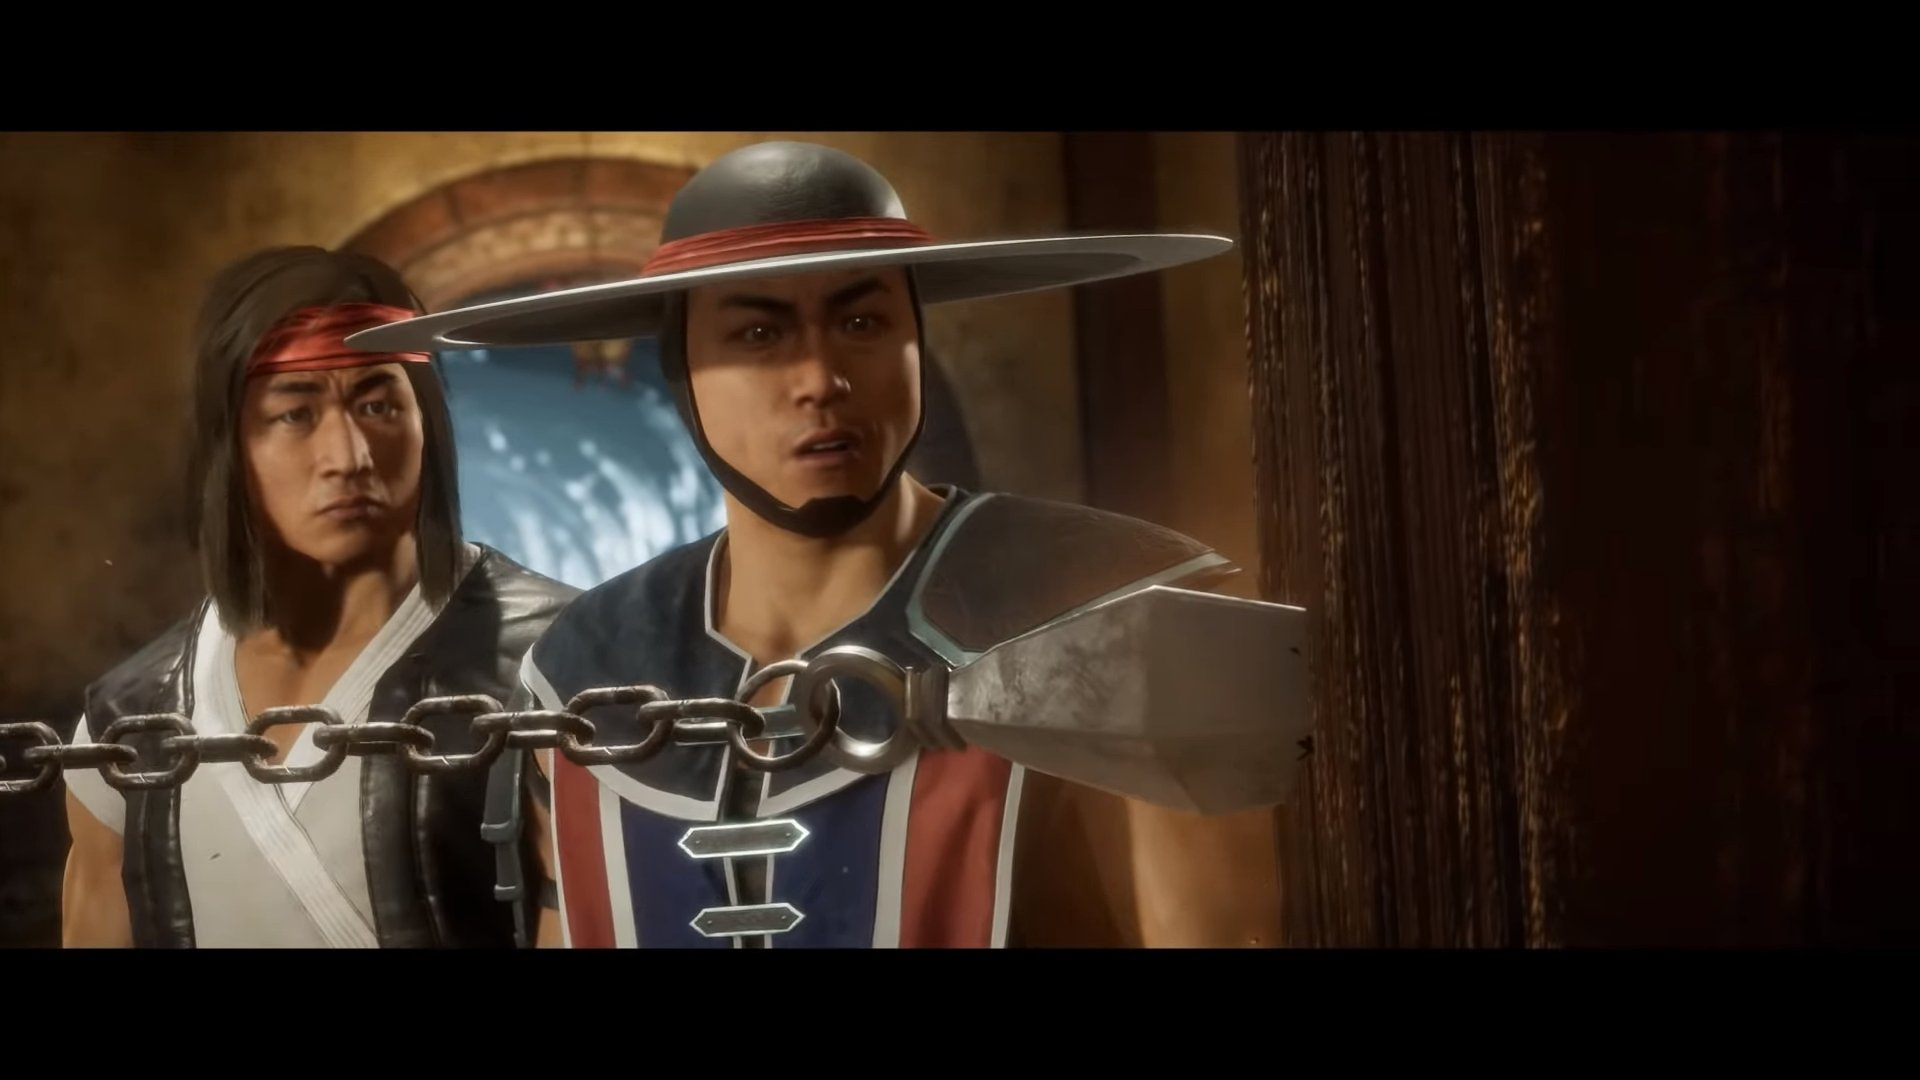 Past & present collide in new Mortal Kombat 11 trailer Header Image